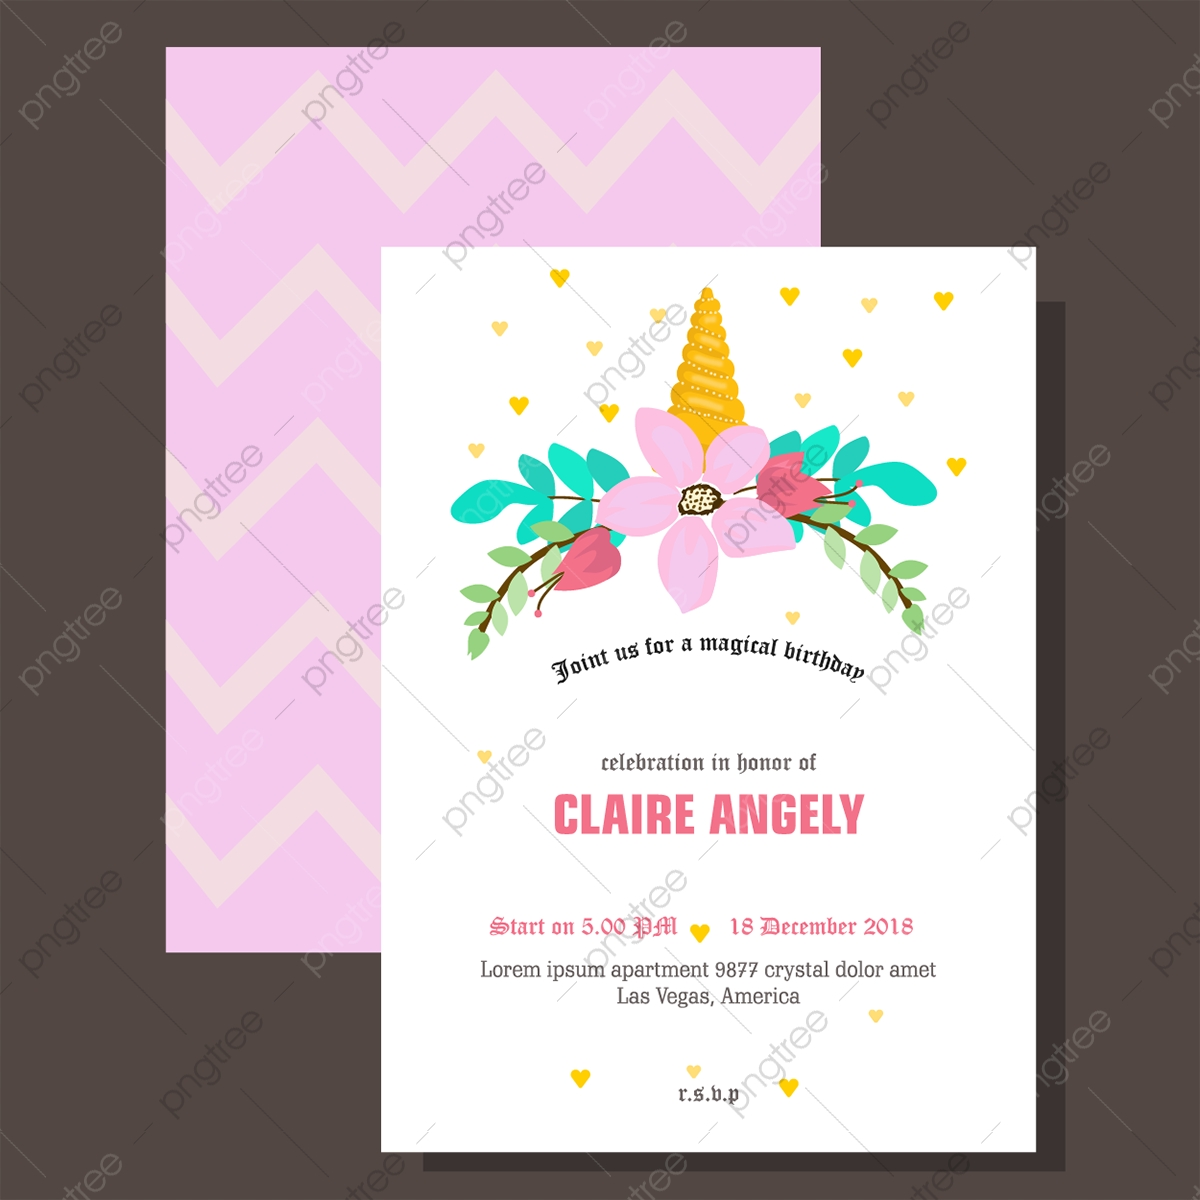 Pink Birthday Invitation Cards Template for Free Download on Pngtree